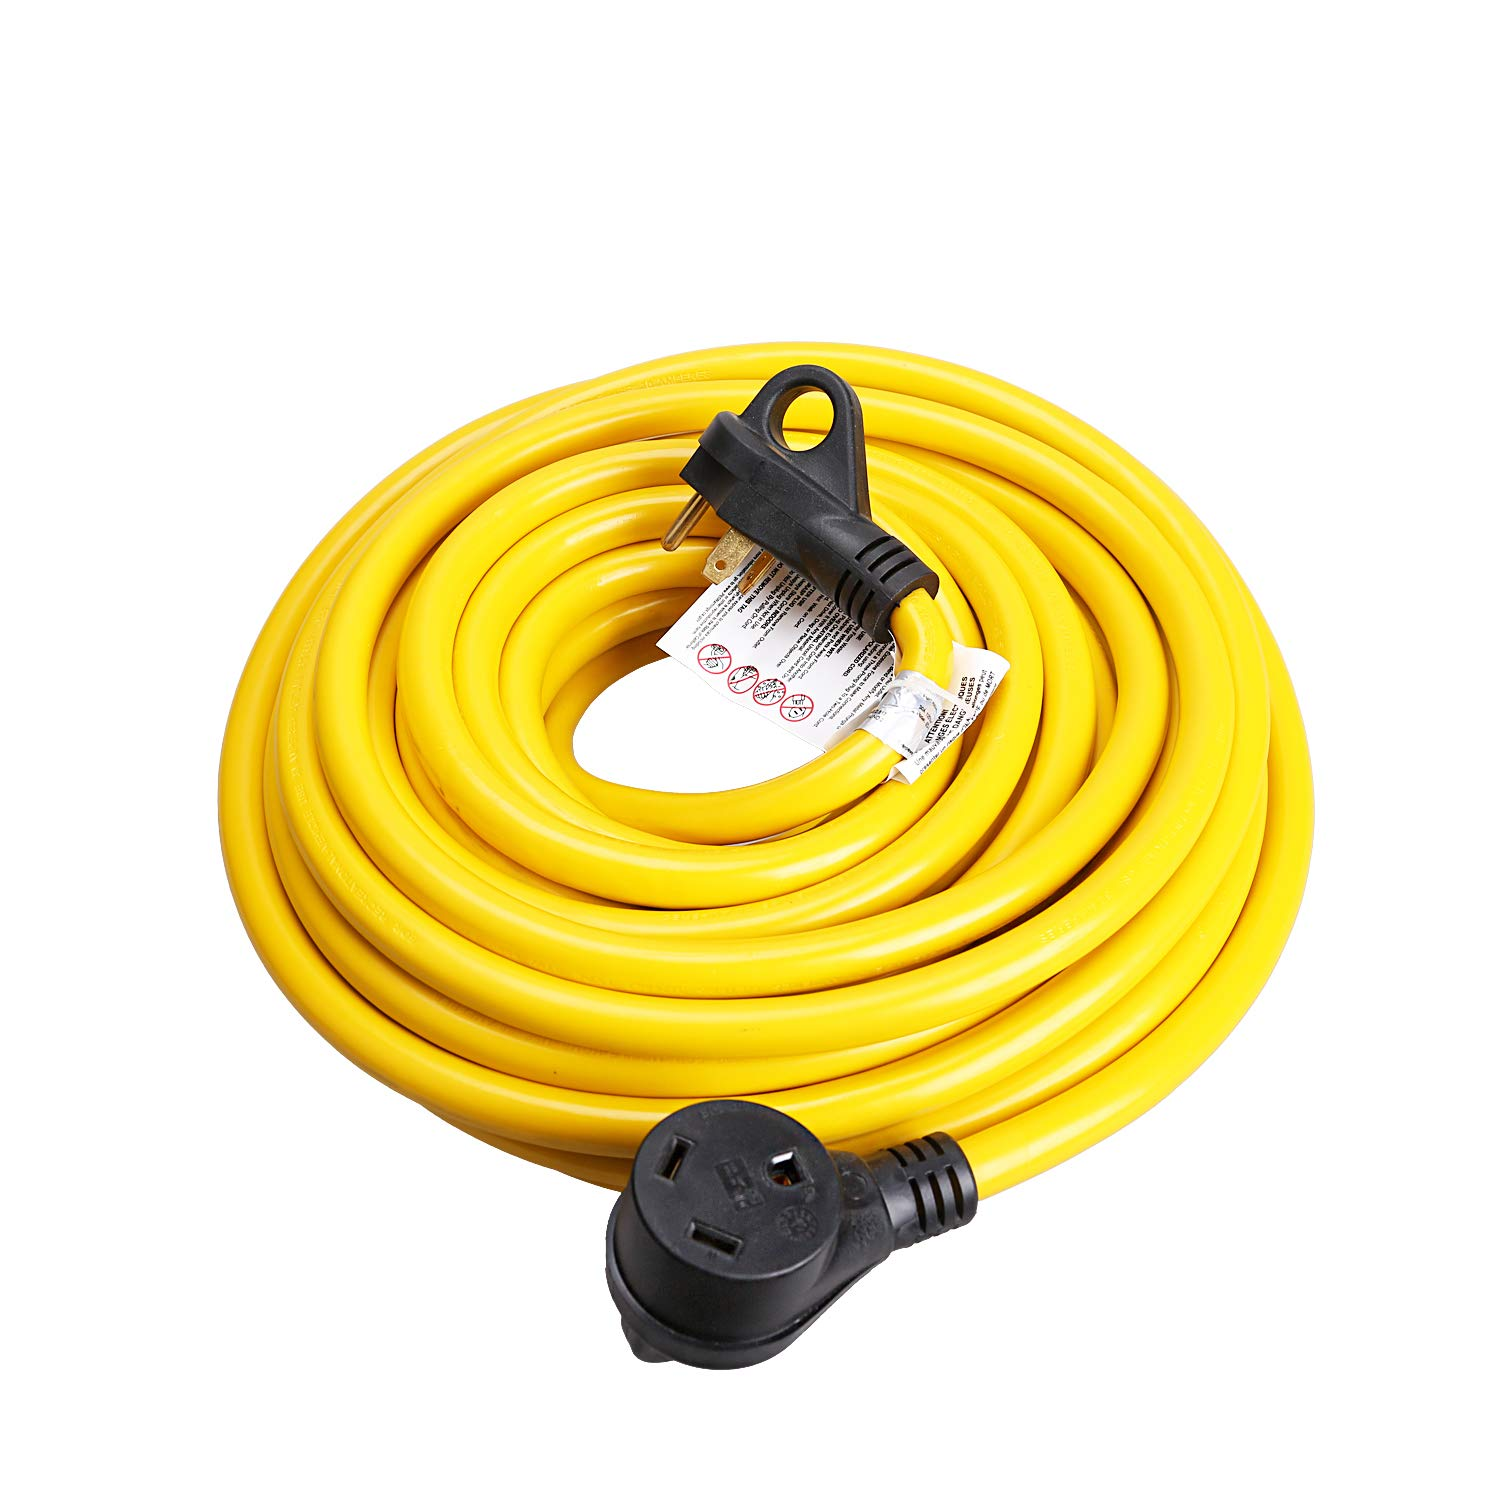 EPICORD RV Extension Cord 30Amp Molded Connector with Grip Handle Plug, 50FT, 125V